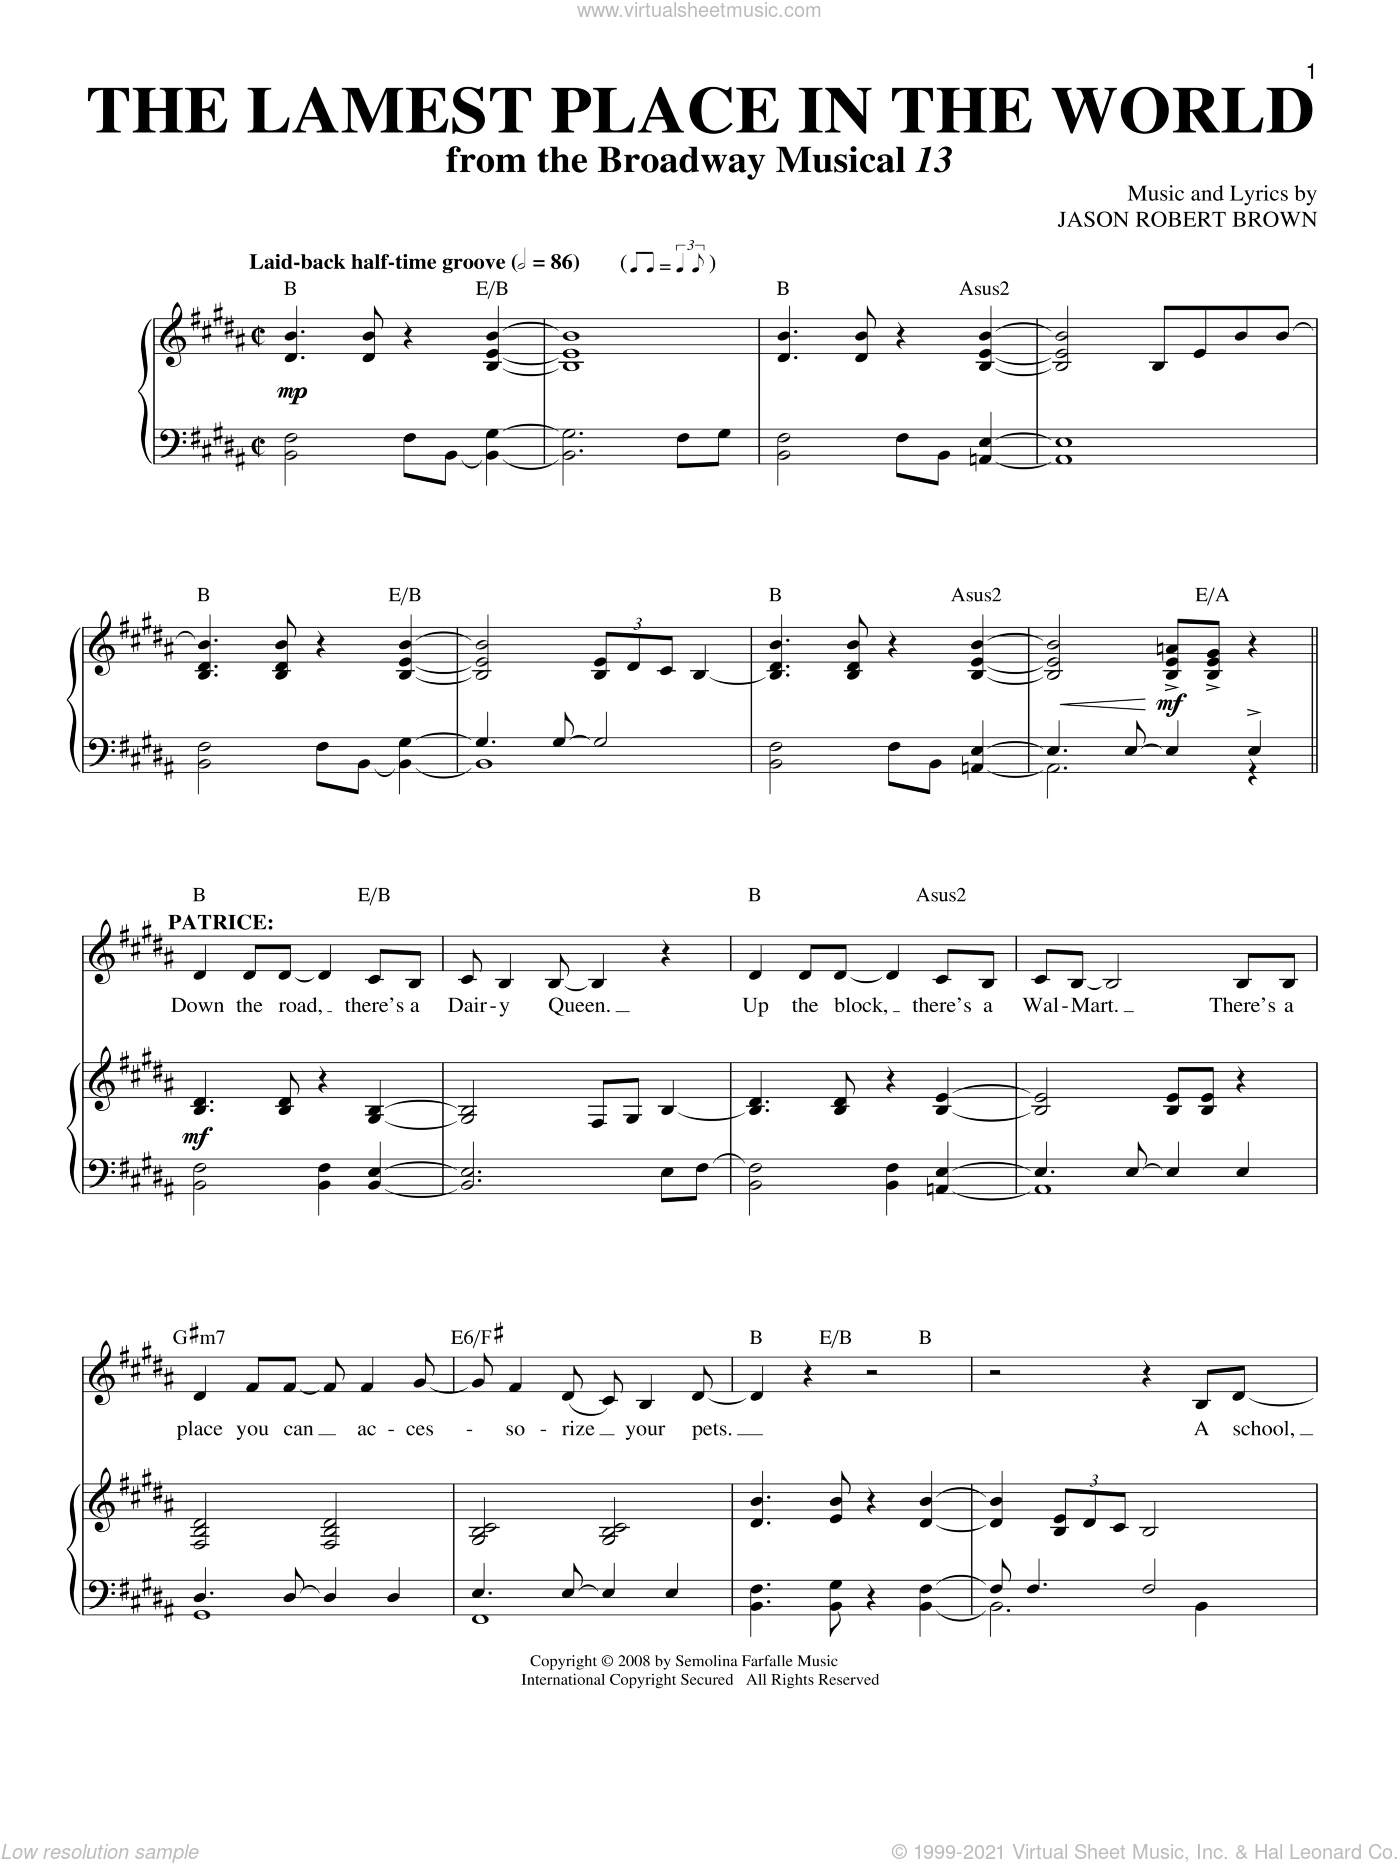 The Lamest Place In The World sheet music for voice and piano by Jason Robert Brown and 13: The Musical, intermediate skill level